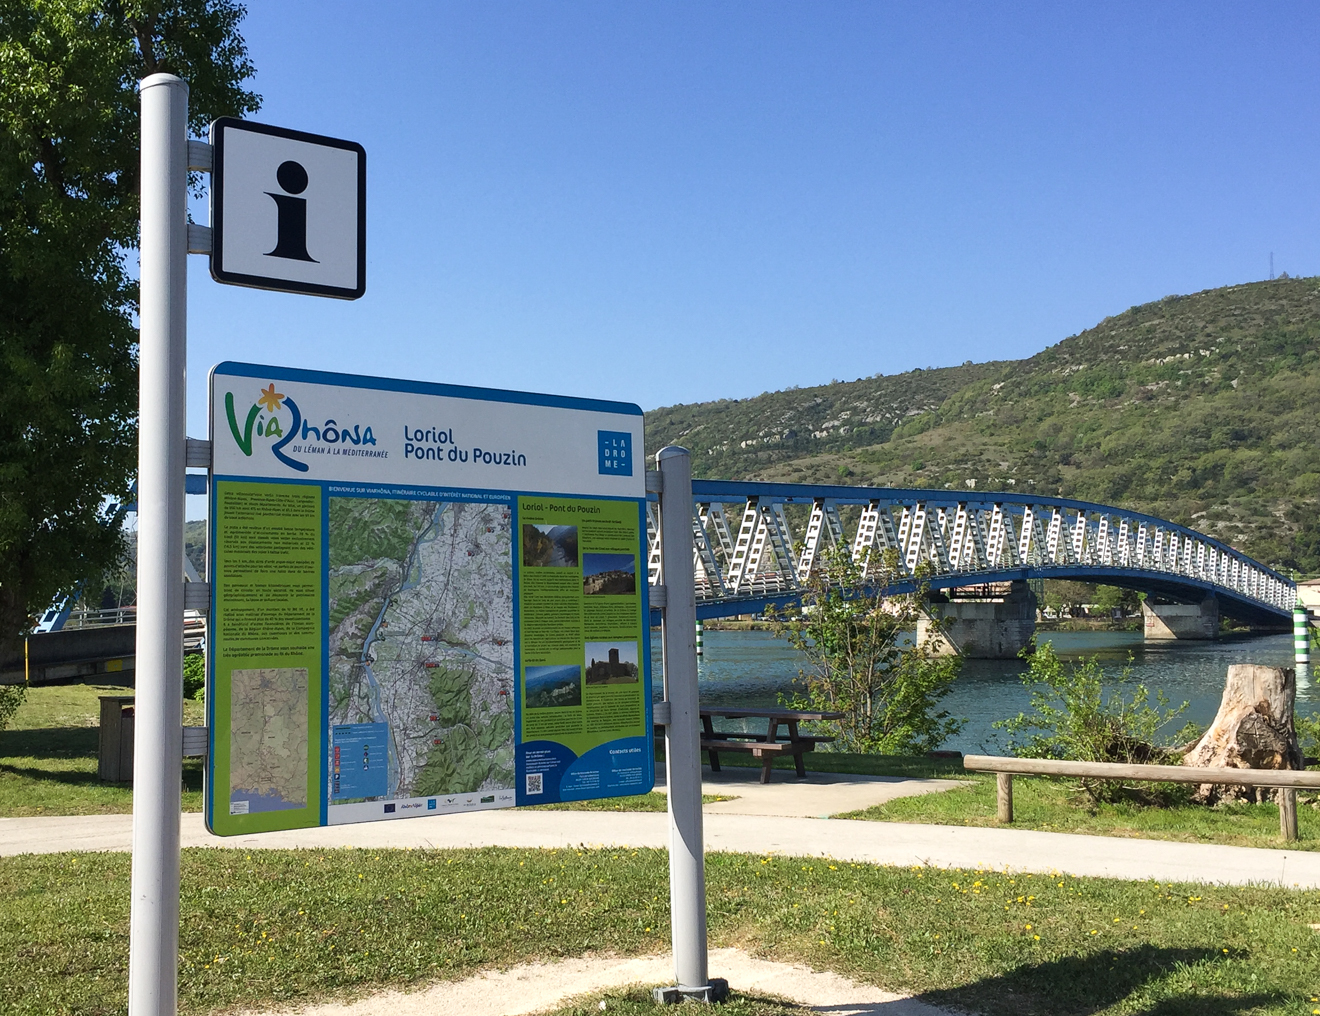 Take a bike ride along the foot and cycle paths : ViaRhôna from Le Pouzin to Rochemaure